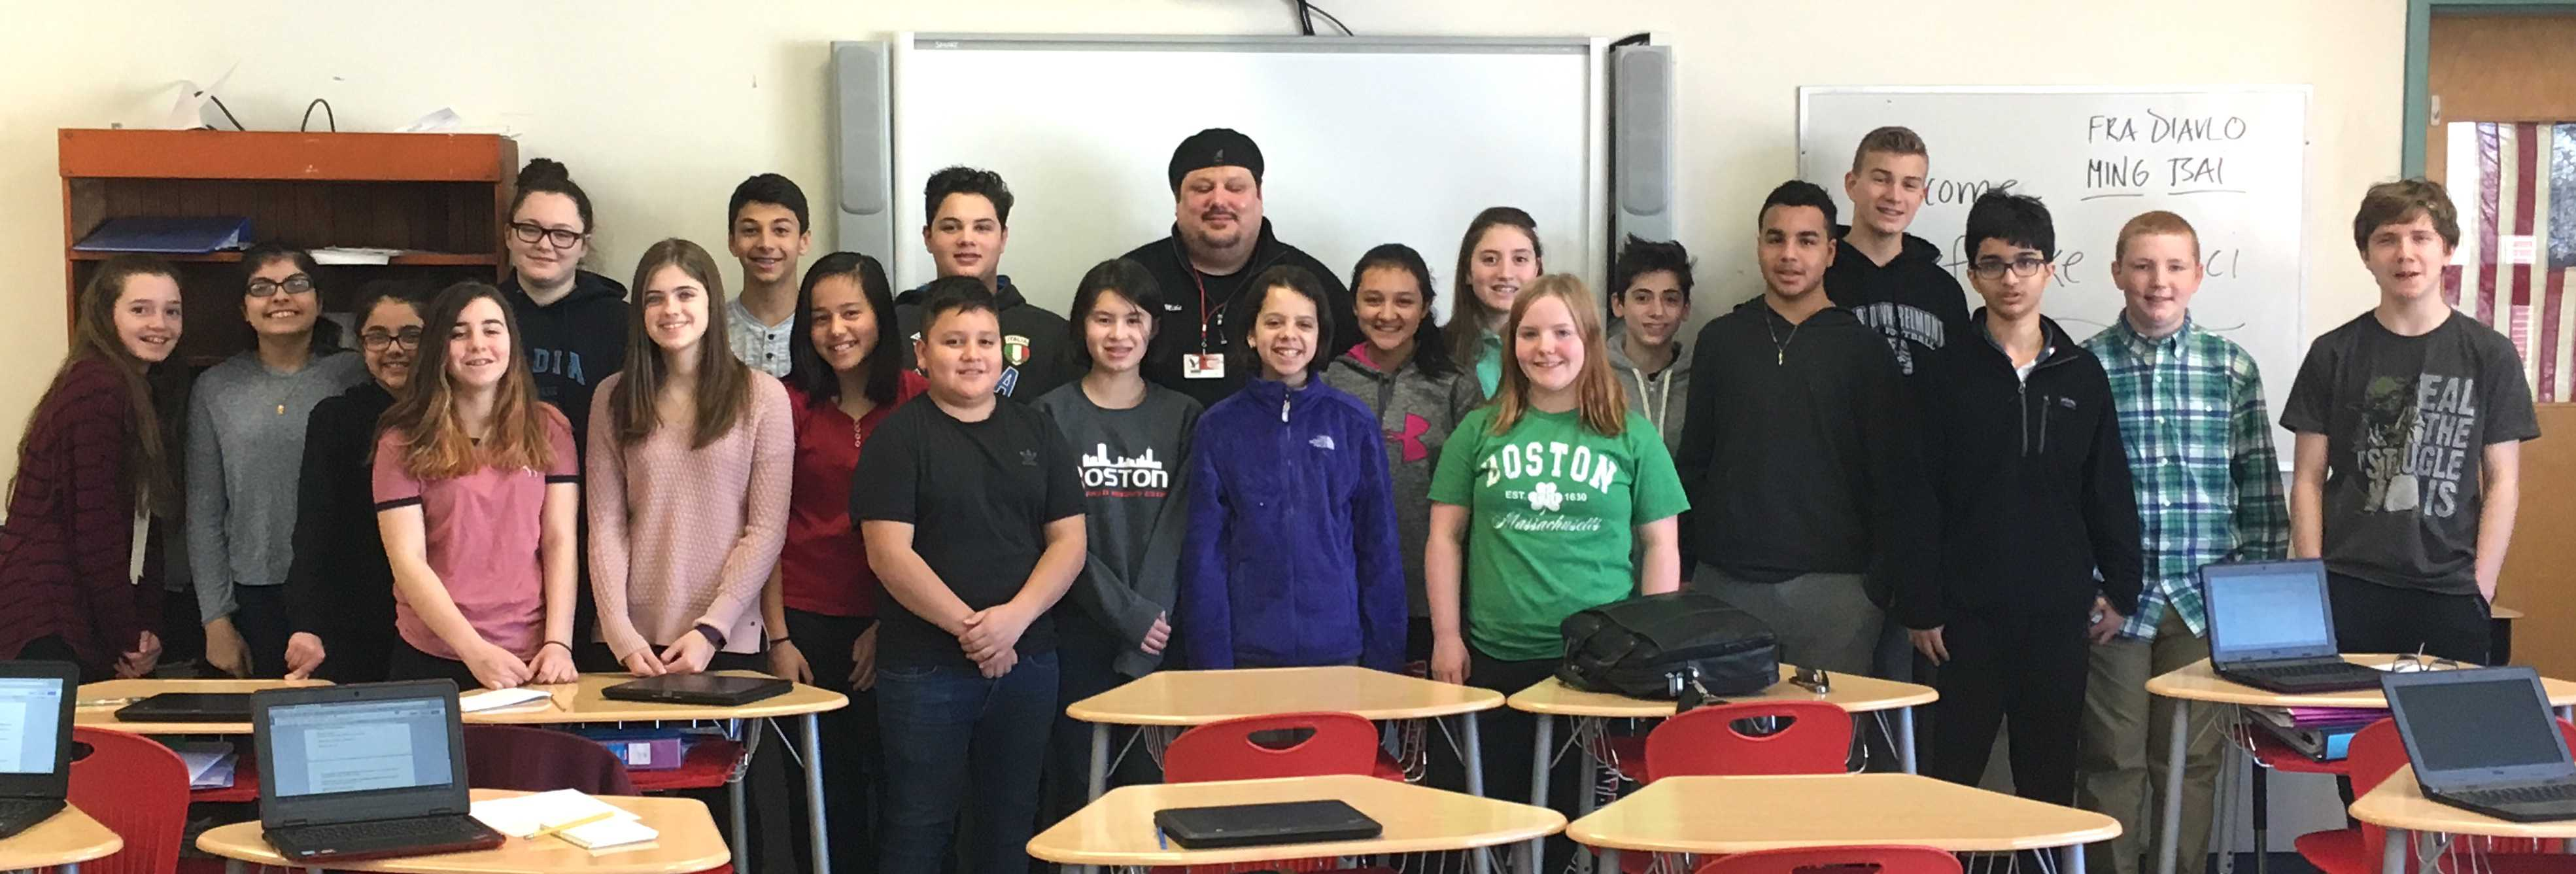 Watertown chef Mike Fucci (center, with hat) poses with reporters from the Watertown Splash during his visit to Watertown Middle School on March 17, 2017. The author and owner of Chef Mike's Catering was interviewed in the Watertown Splash newsroom about his victorious appearance on Food Network's